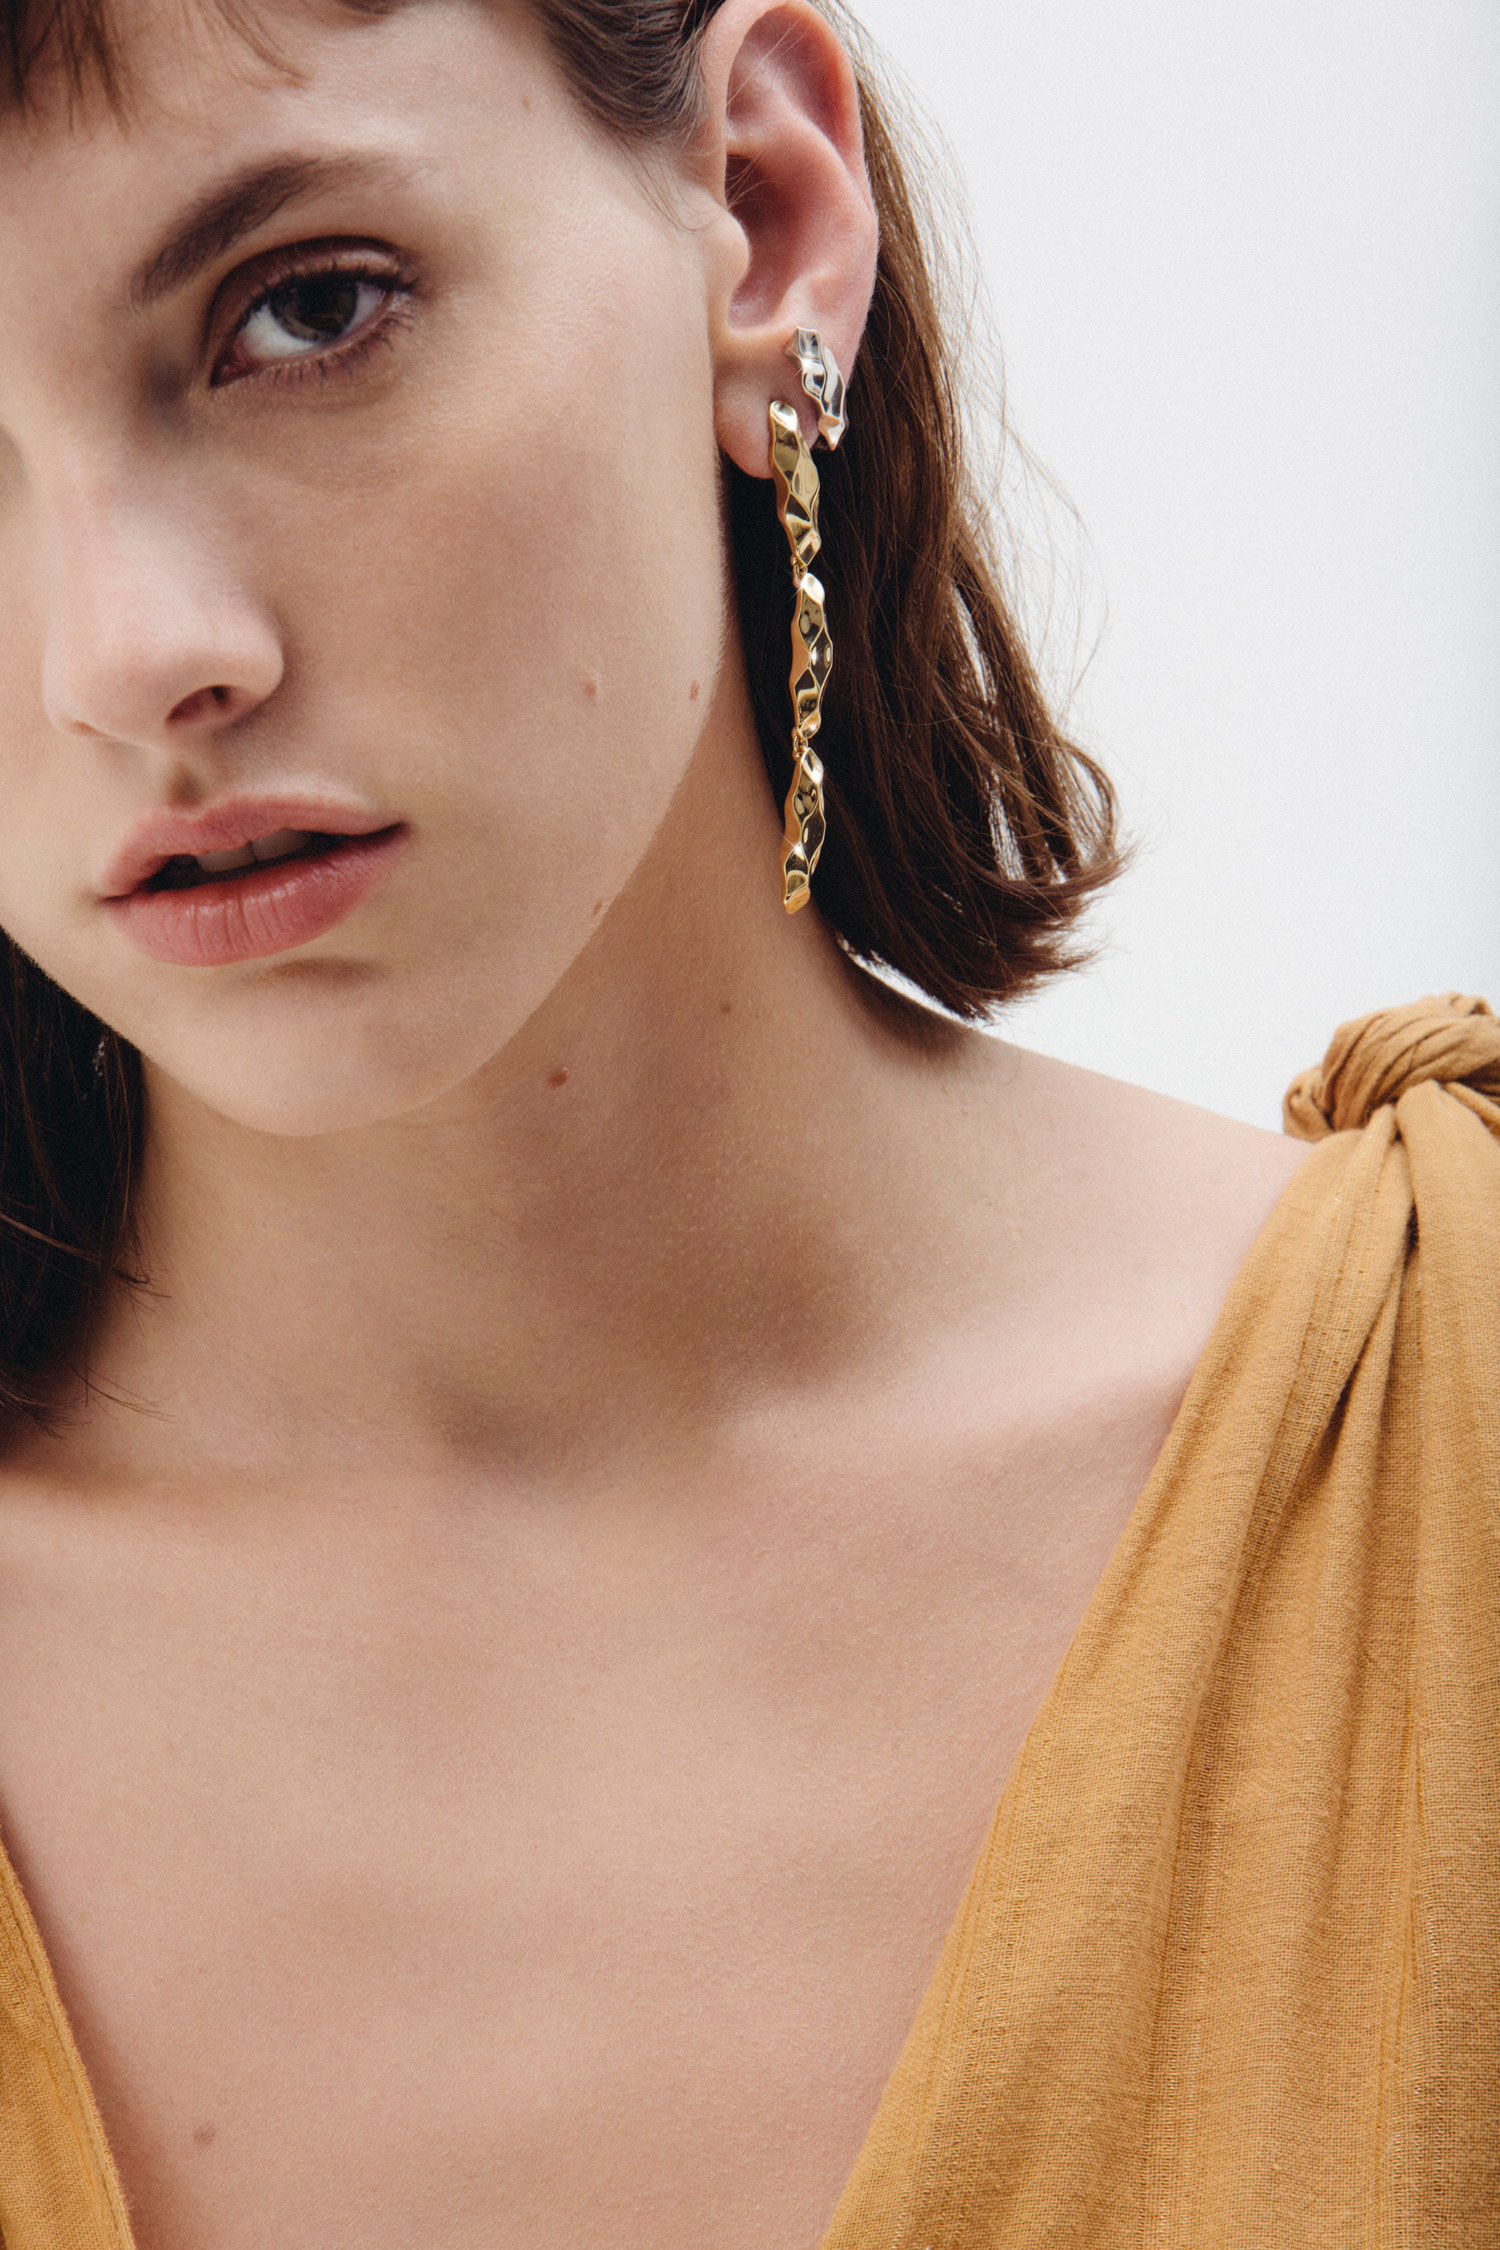 dunes-long-earrings.jpg